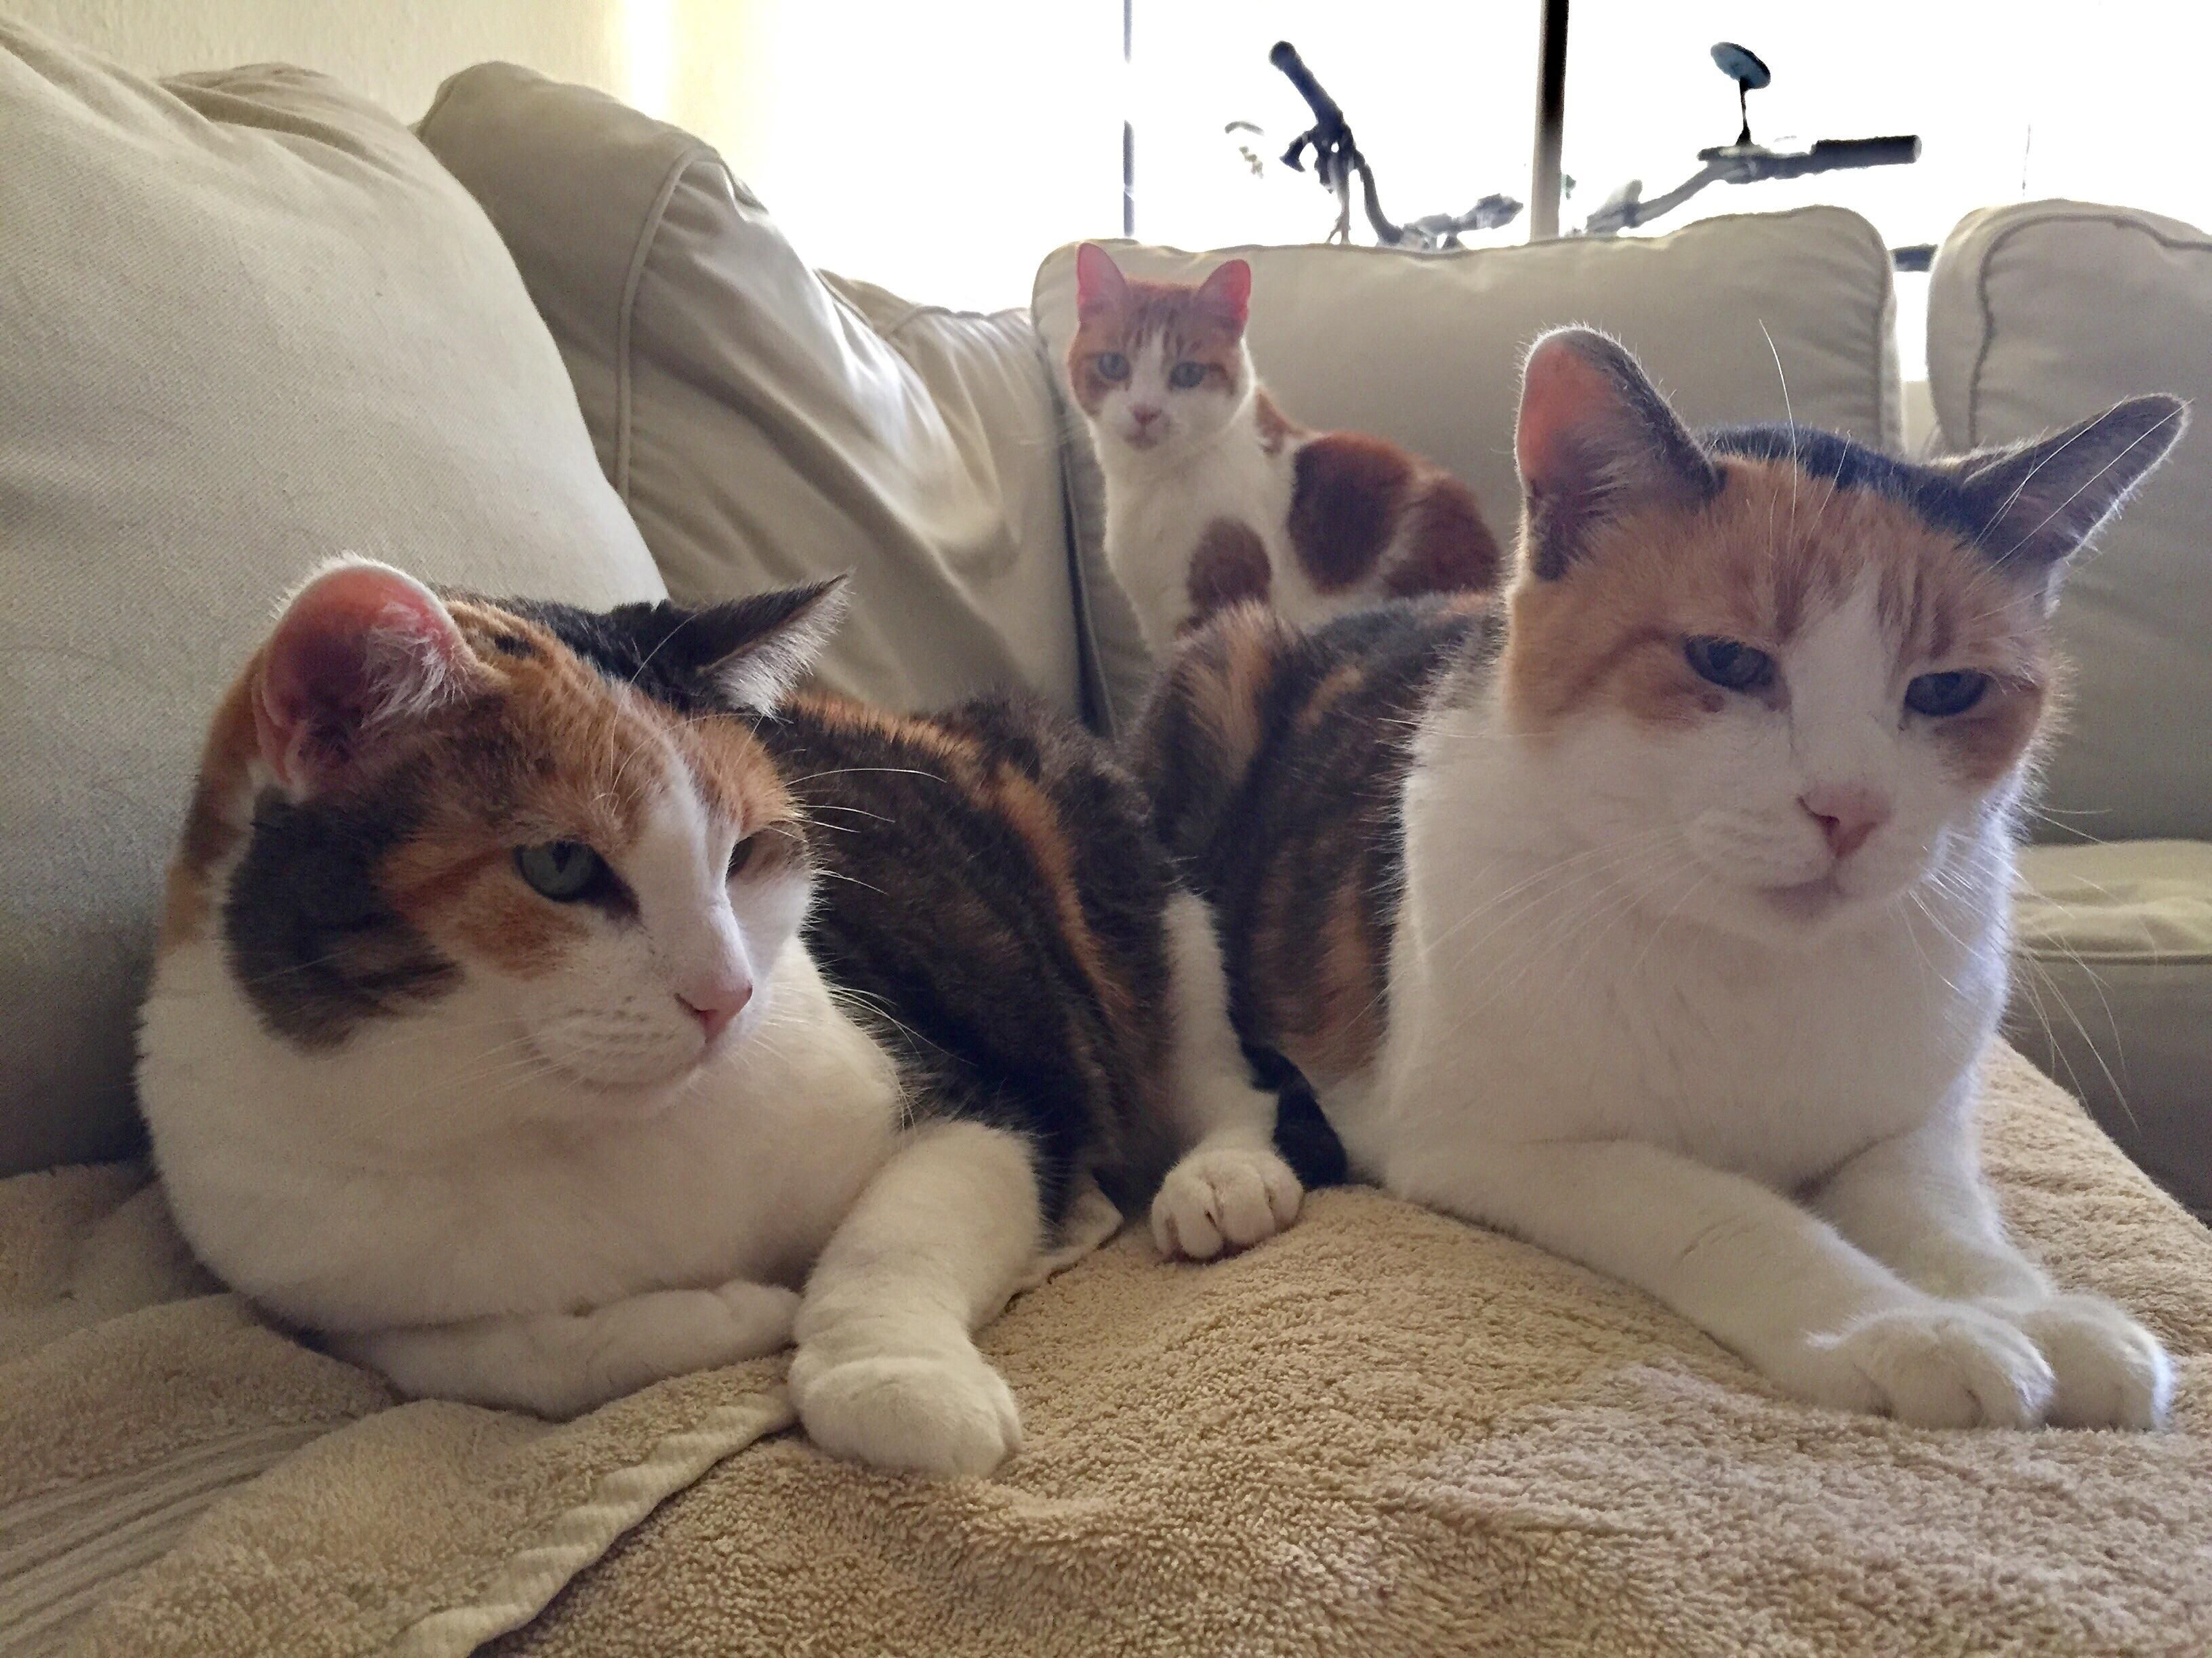 My three crazy cats: Charlie & Angel (females 17) and Billy (male 8) in the background http://ift.tt/2mhIM05